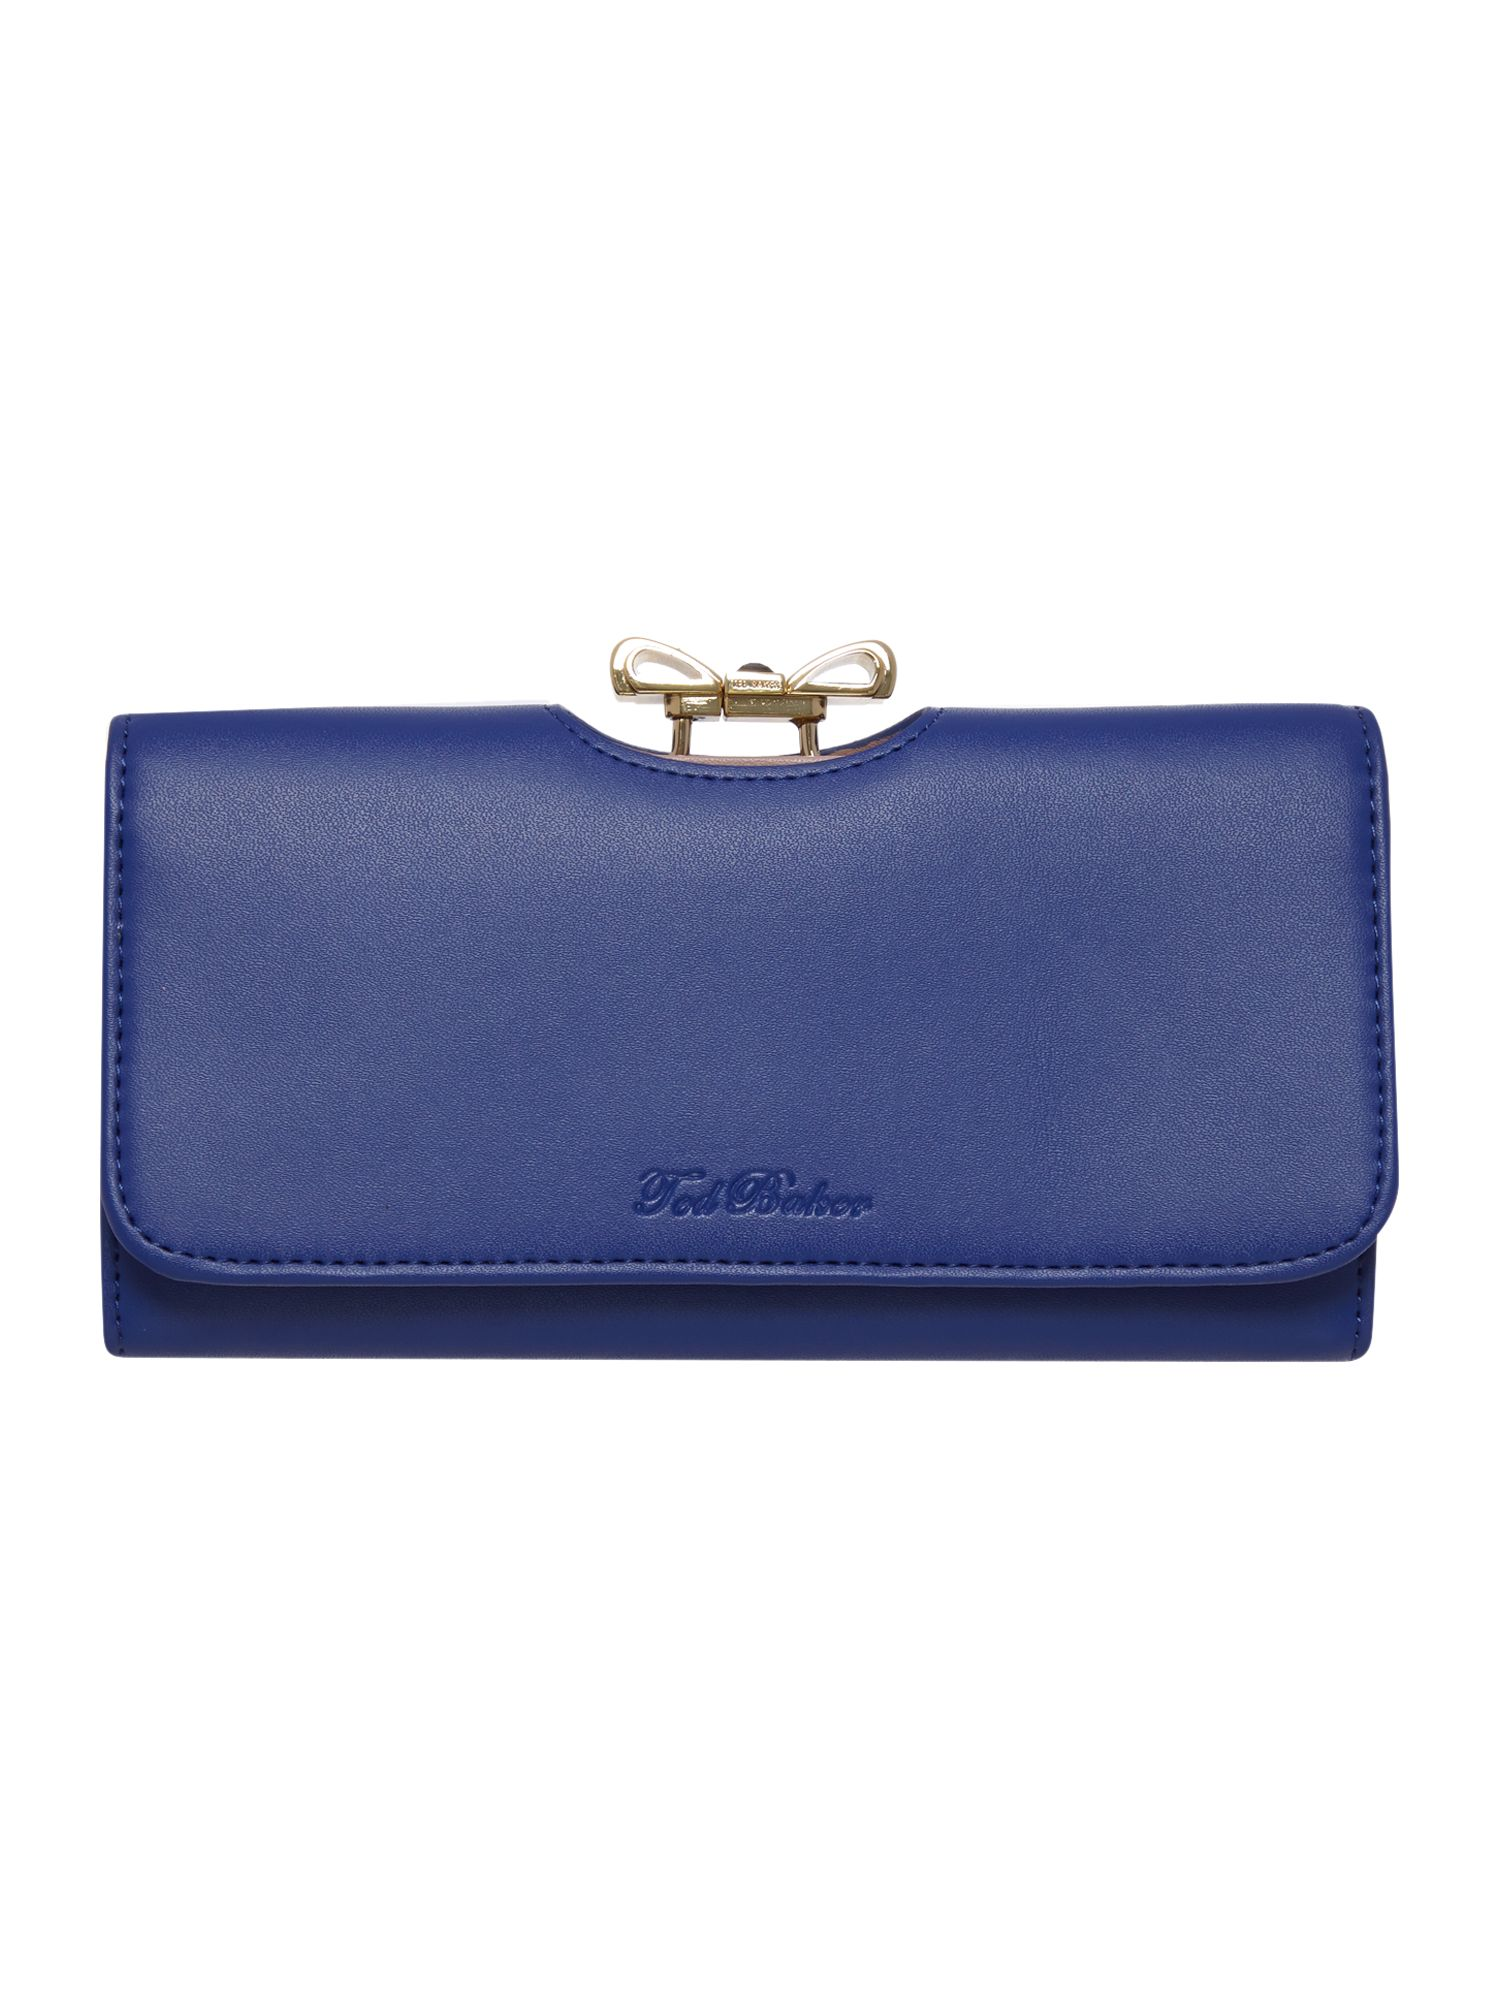 Clue crystal bow leather matinee purse